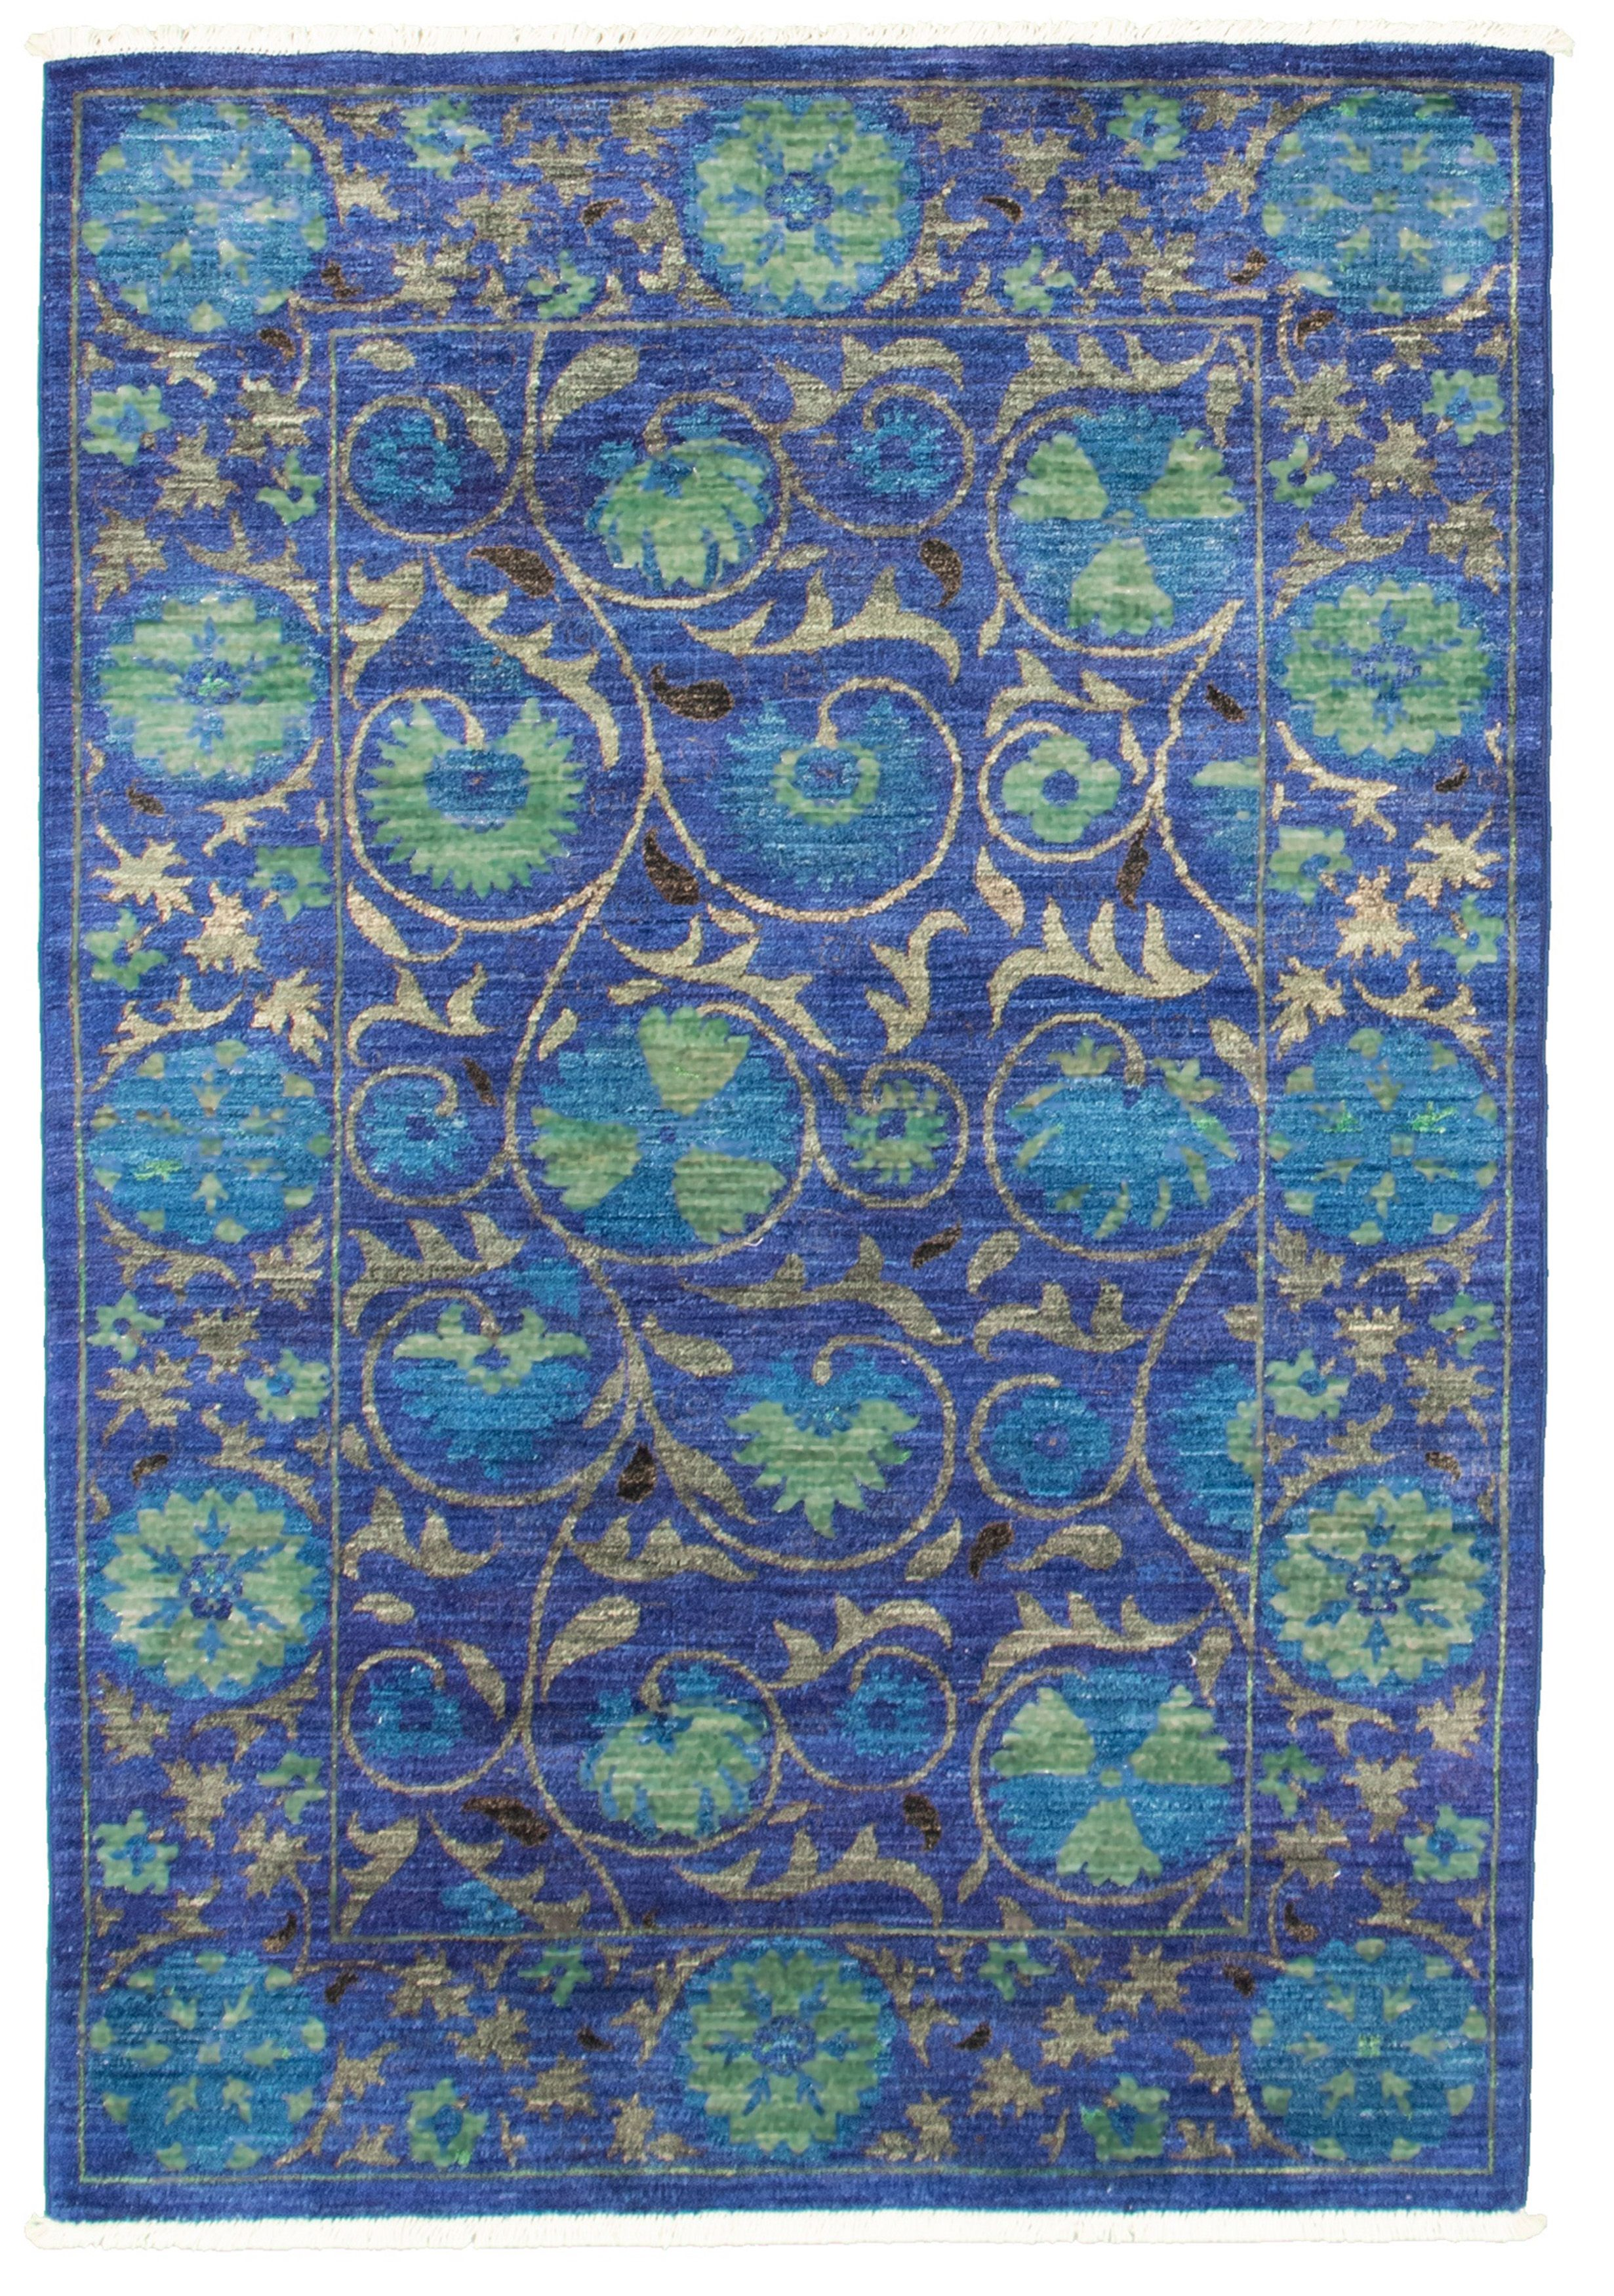 Pakistani Signature Collection 4 0 X 6 0 Hand Knotted Wool Blue Rug Ecarpetgallery